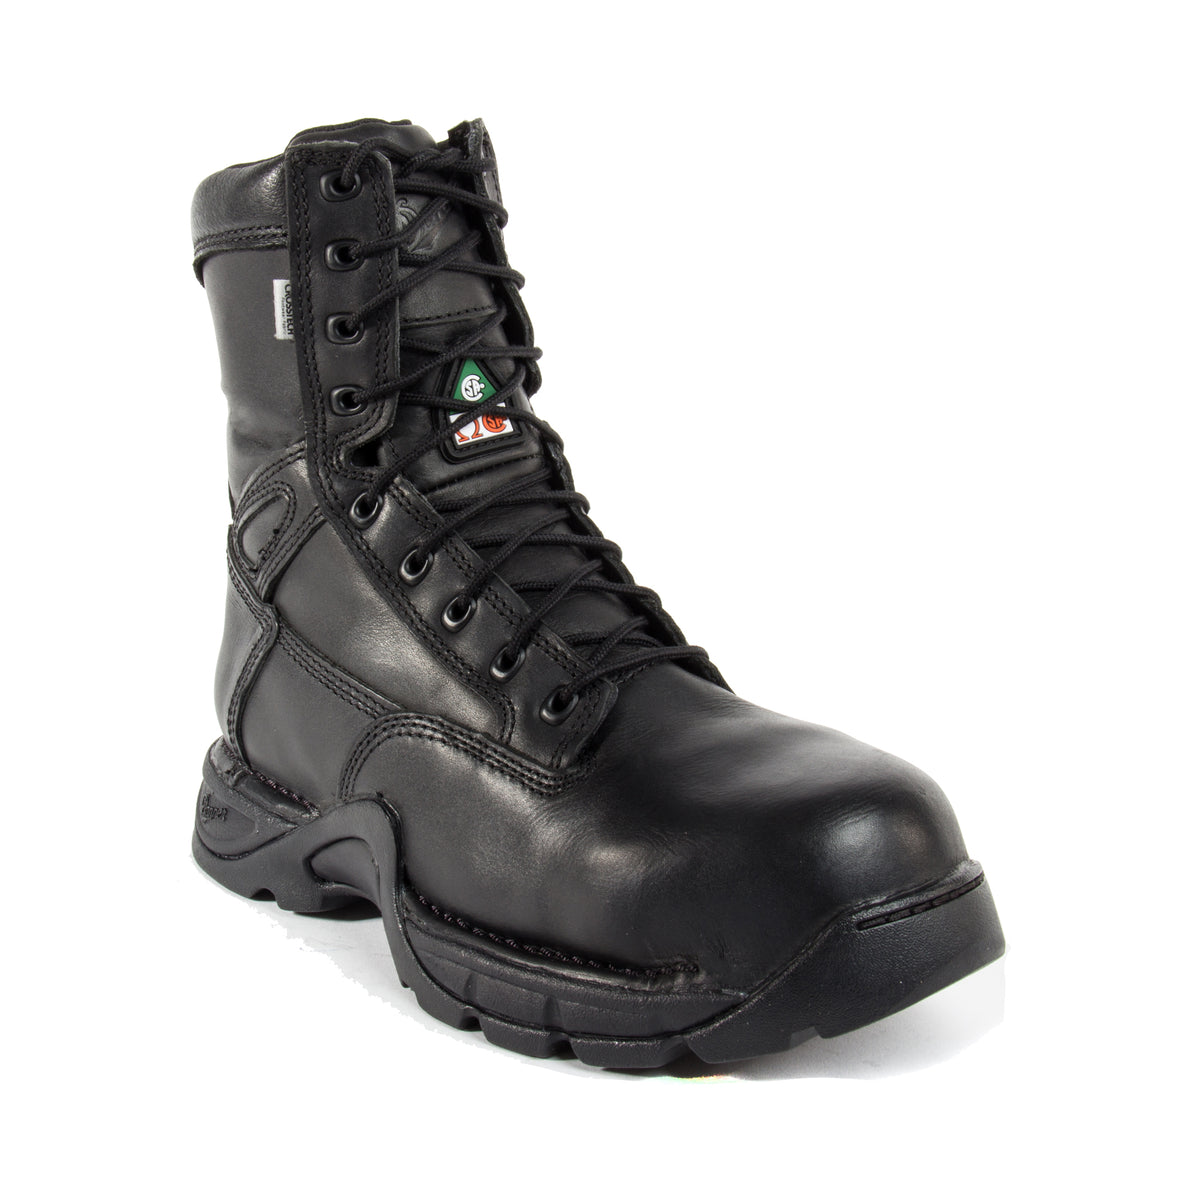 8 Quot Striker Ii Ems Side Zip Csa Boots Workboot